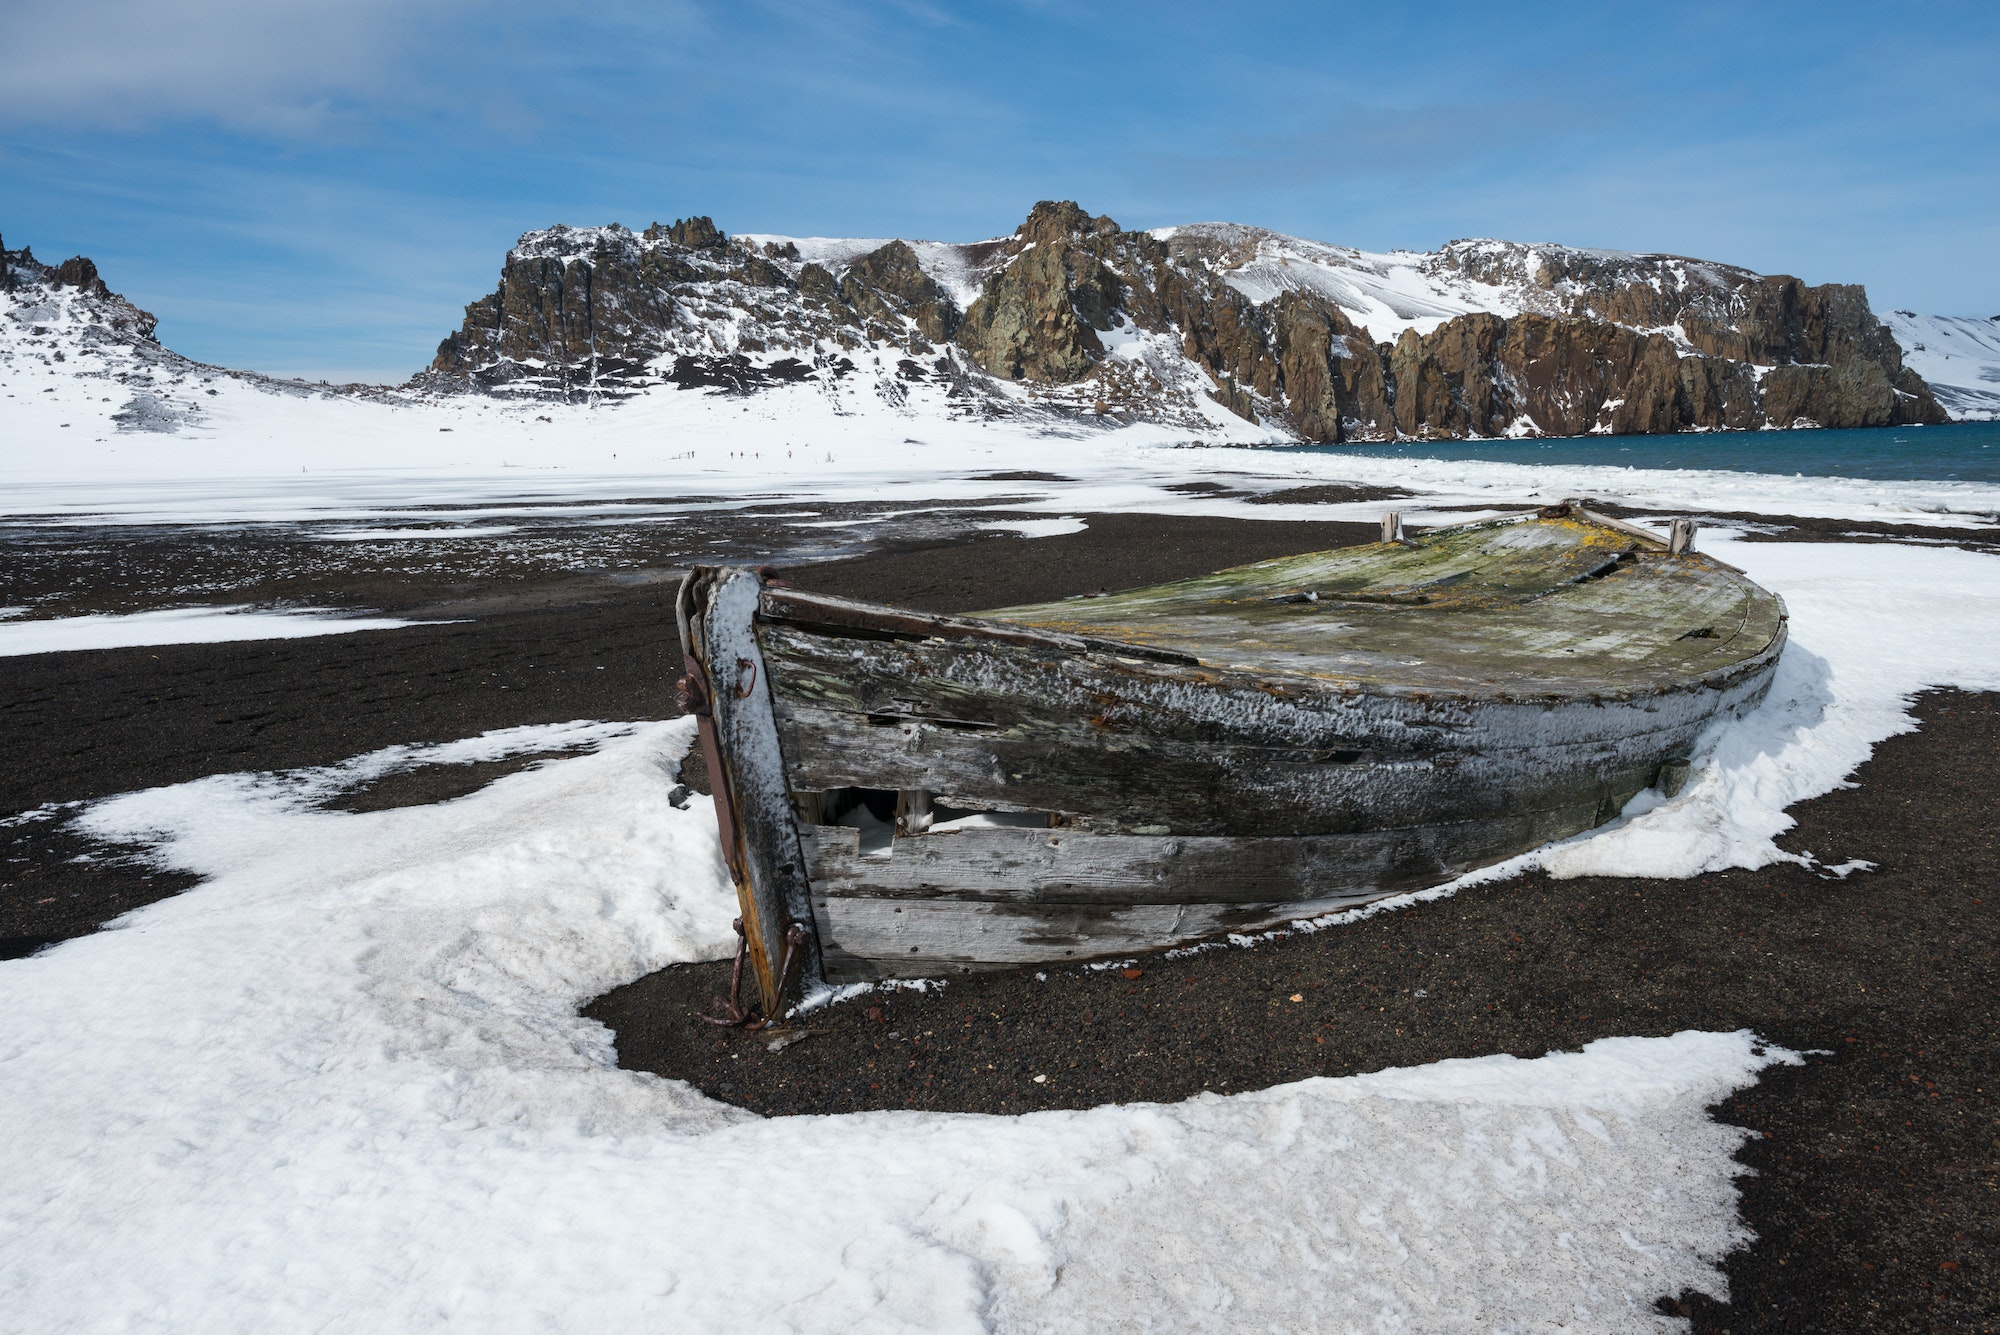 Before it was abandoned, Deception Island served as a whaling base and scientific research center.